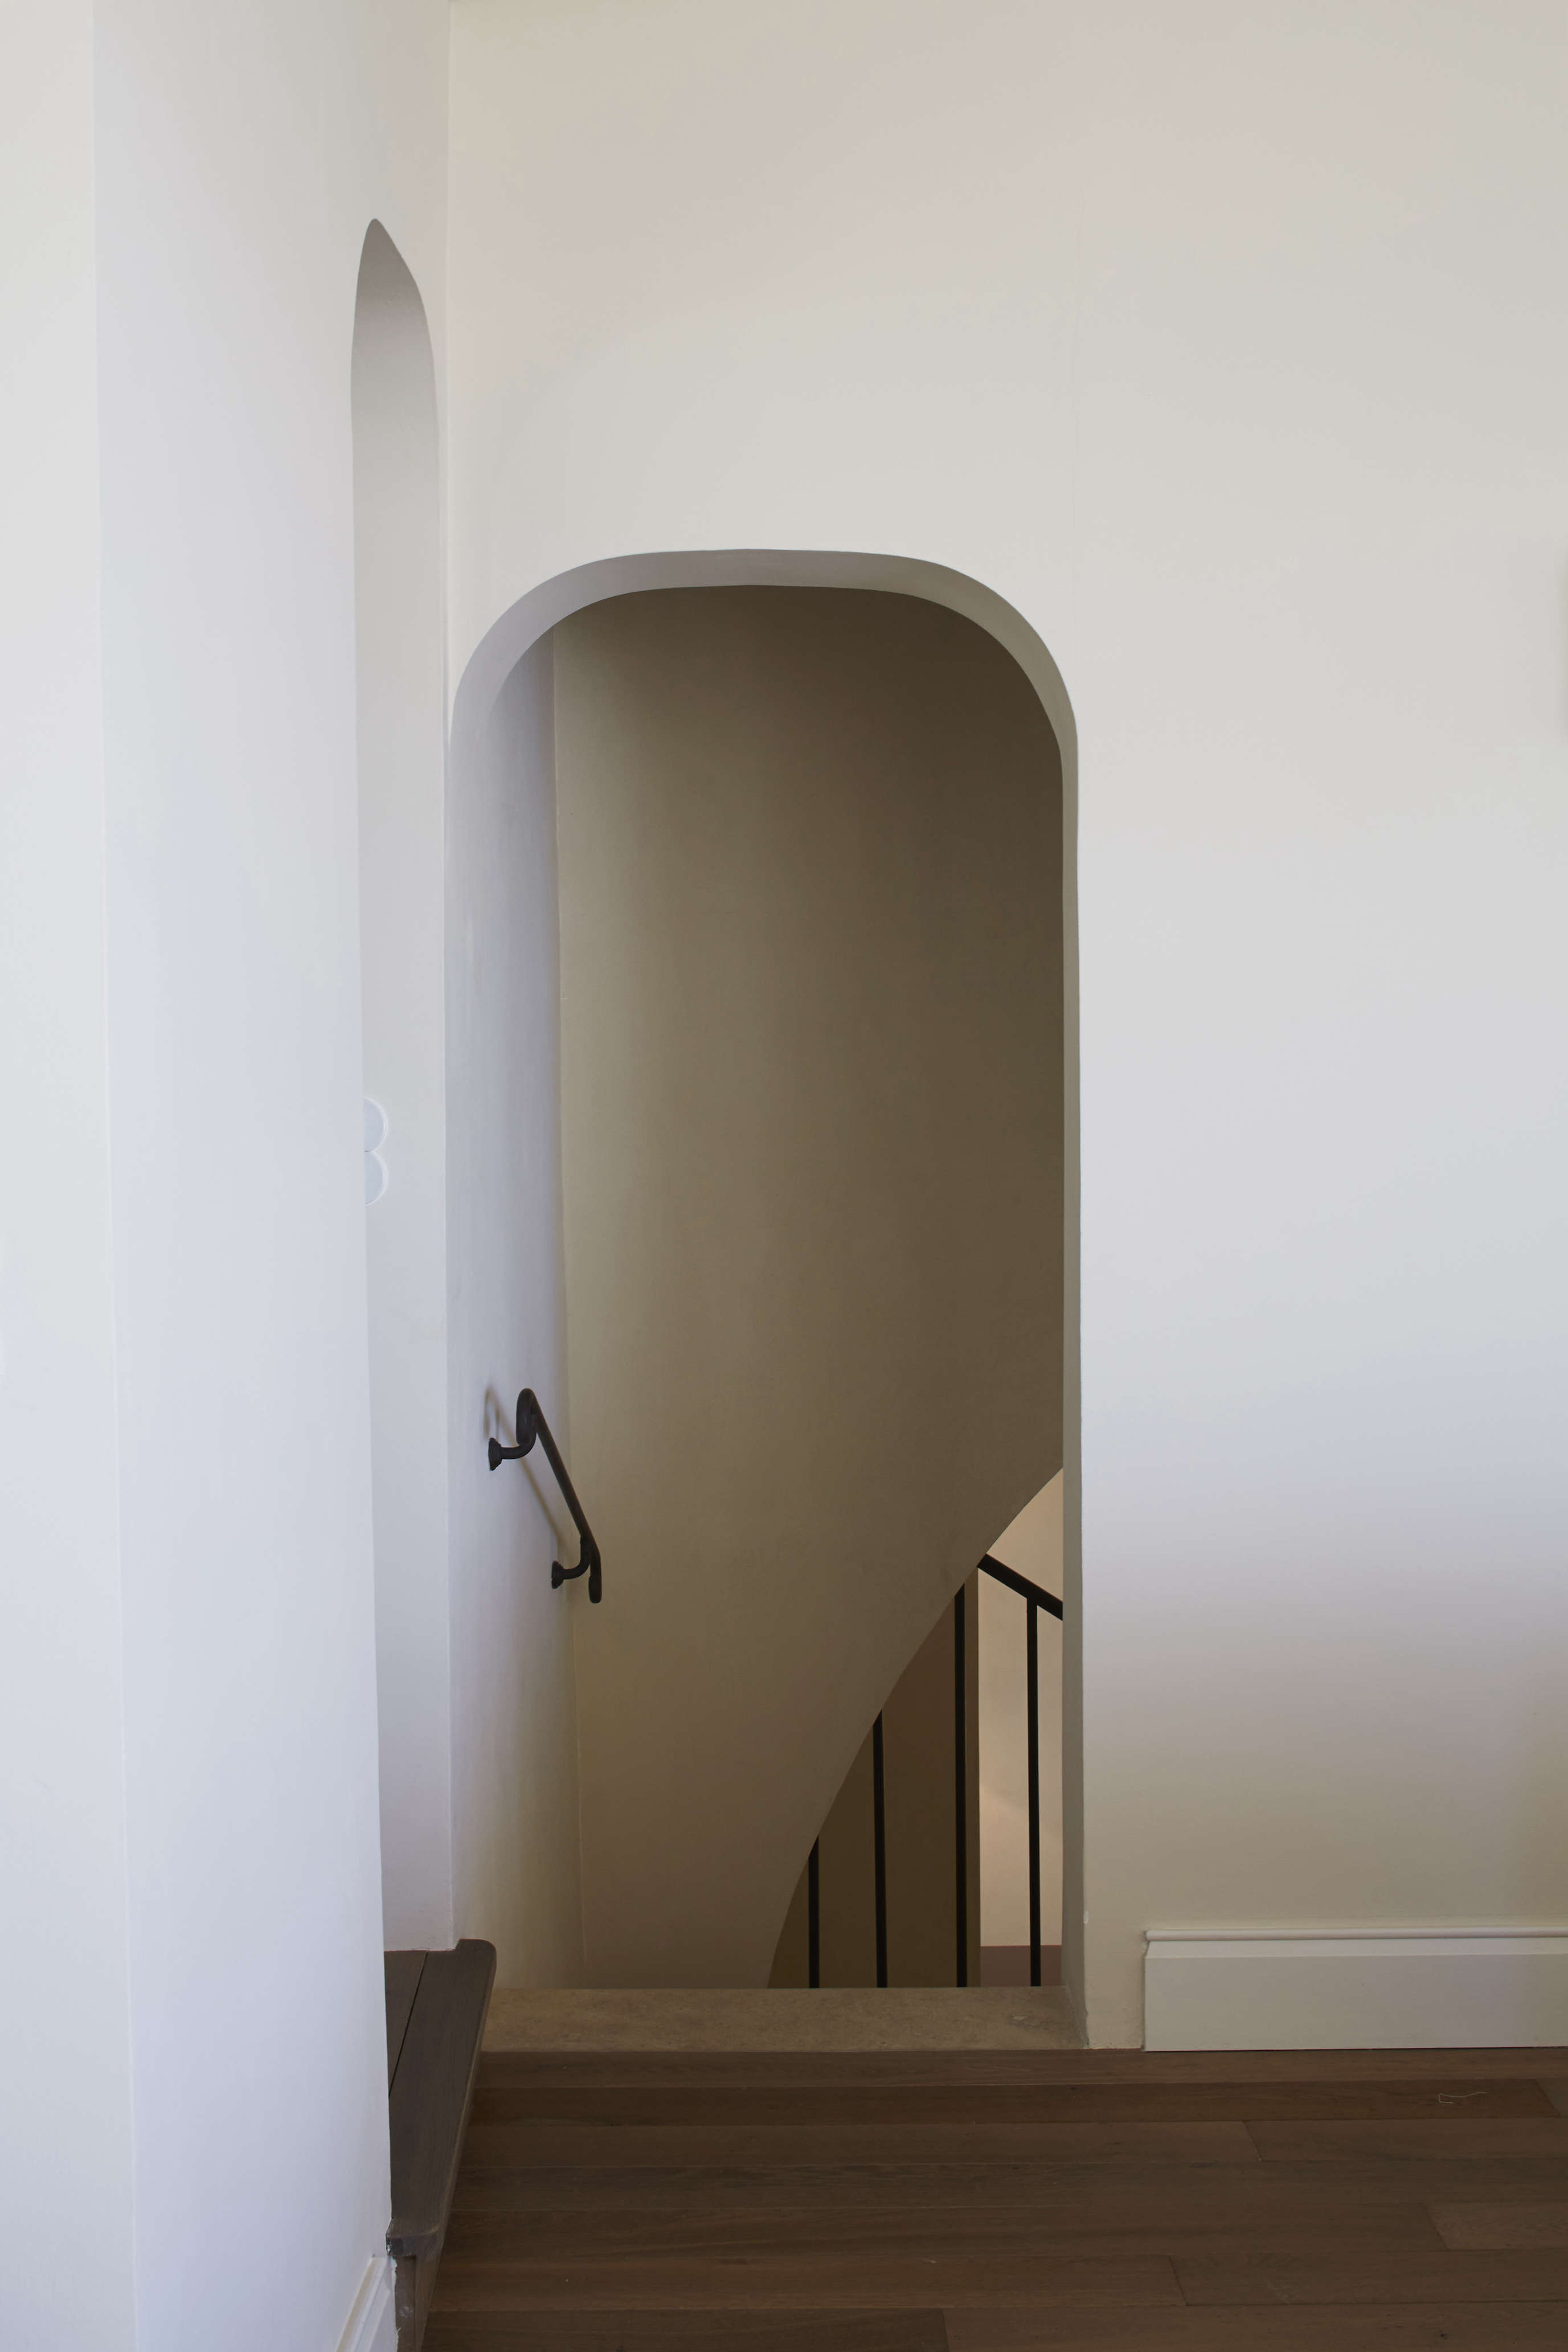 The lines of the arched doorways and stair walls are highlighted by the lime plaster, which adds nuance and depth to the walls. Read about a DIY version in our posts Limewashed Walls for Modern Times and Build-It-for-Less Materials.